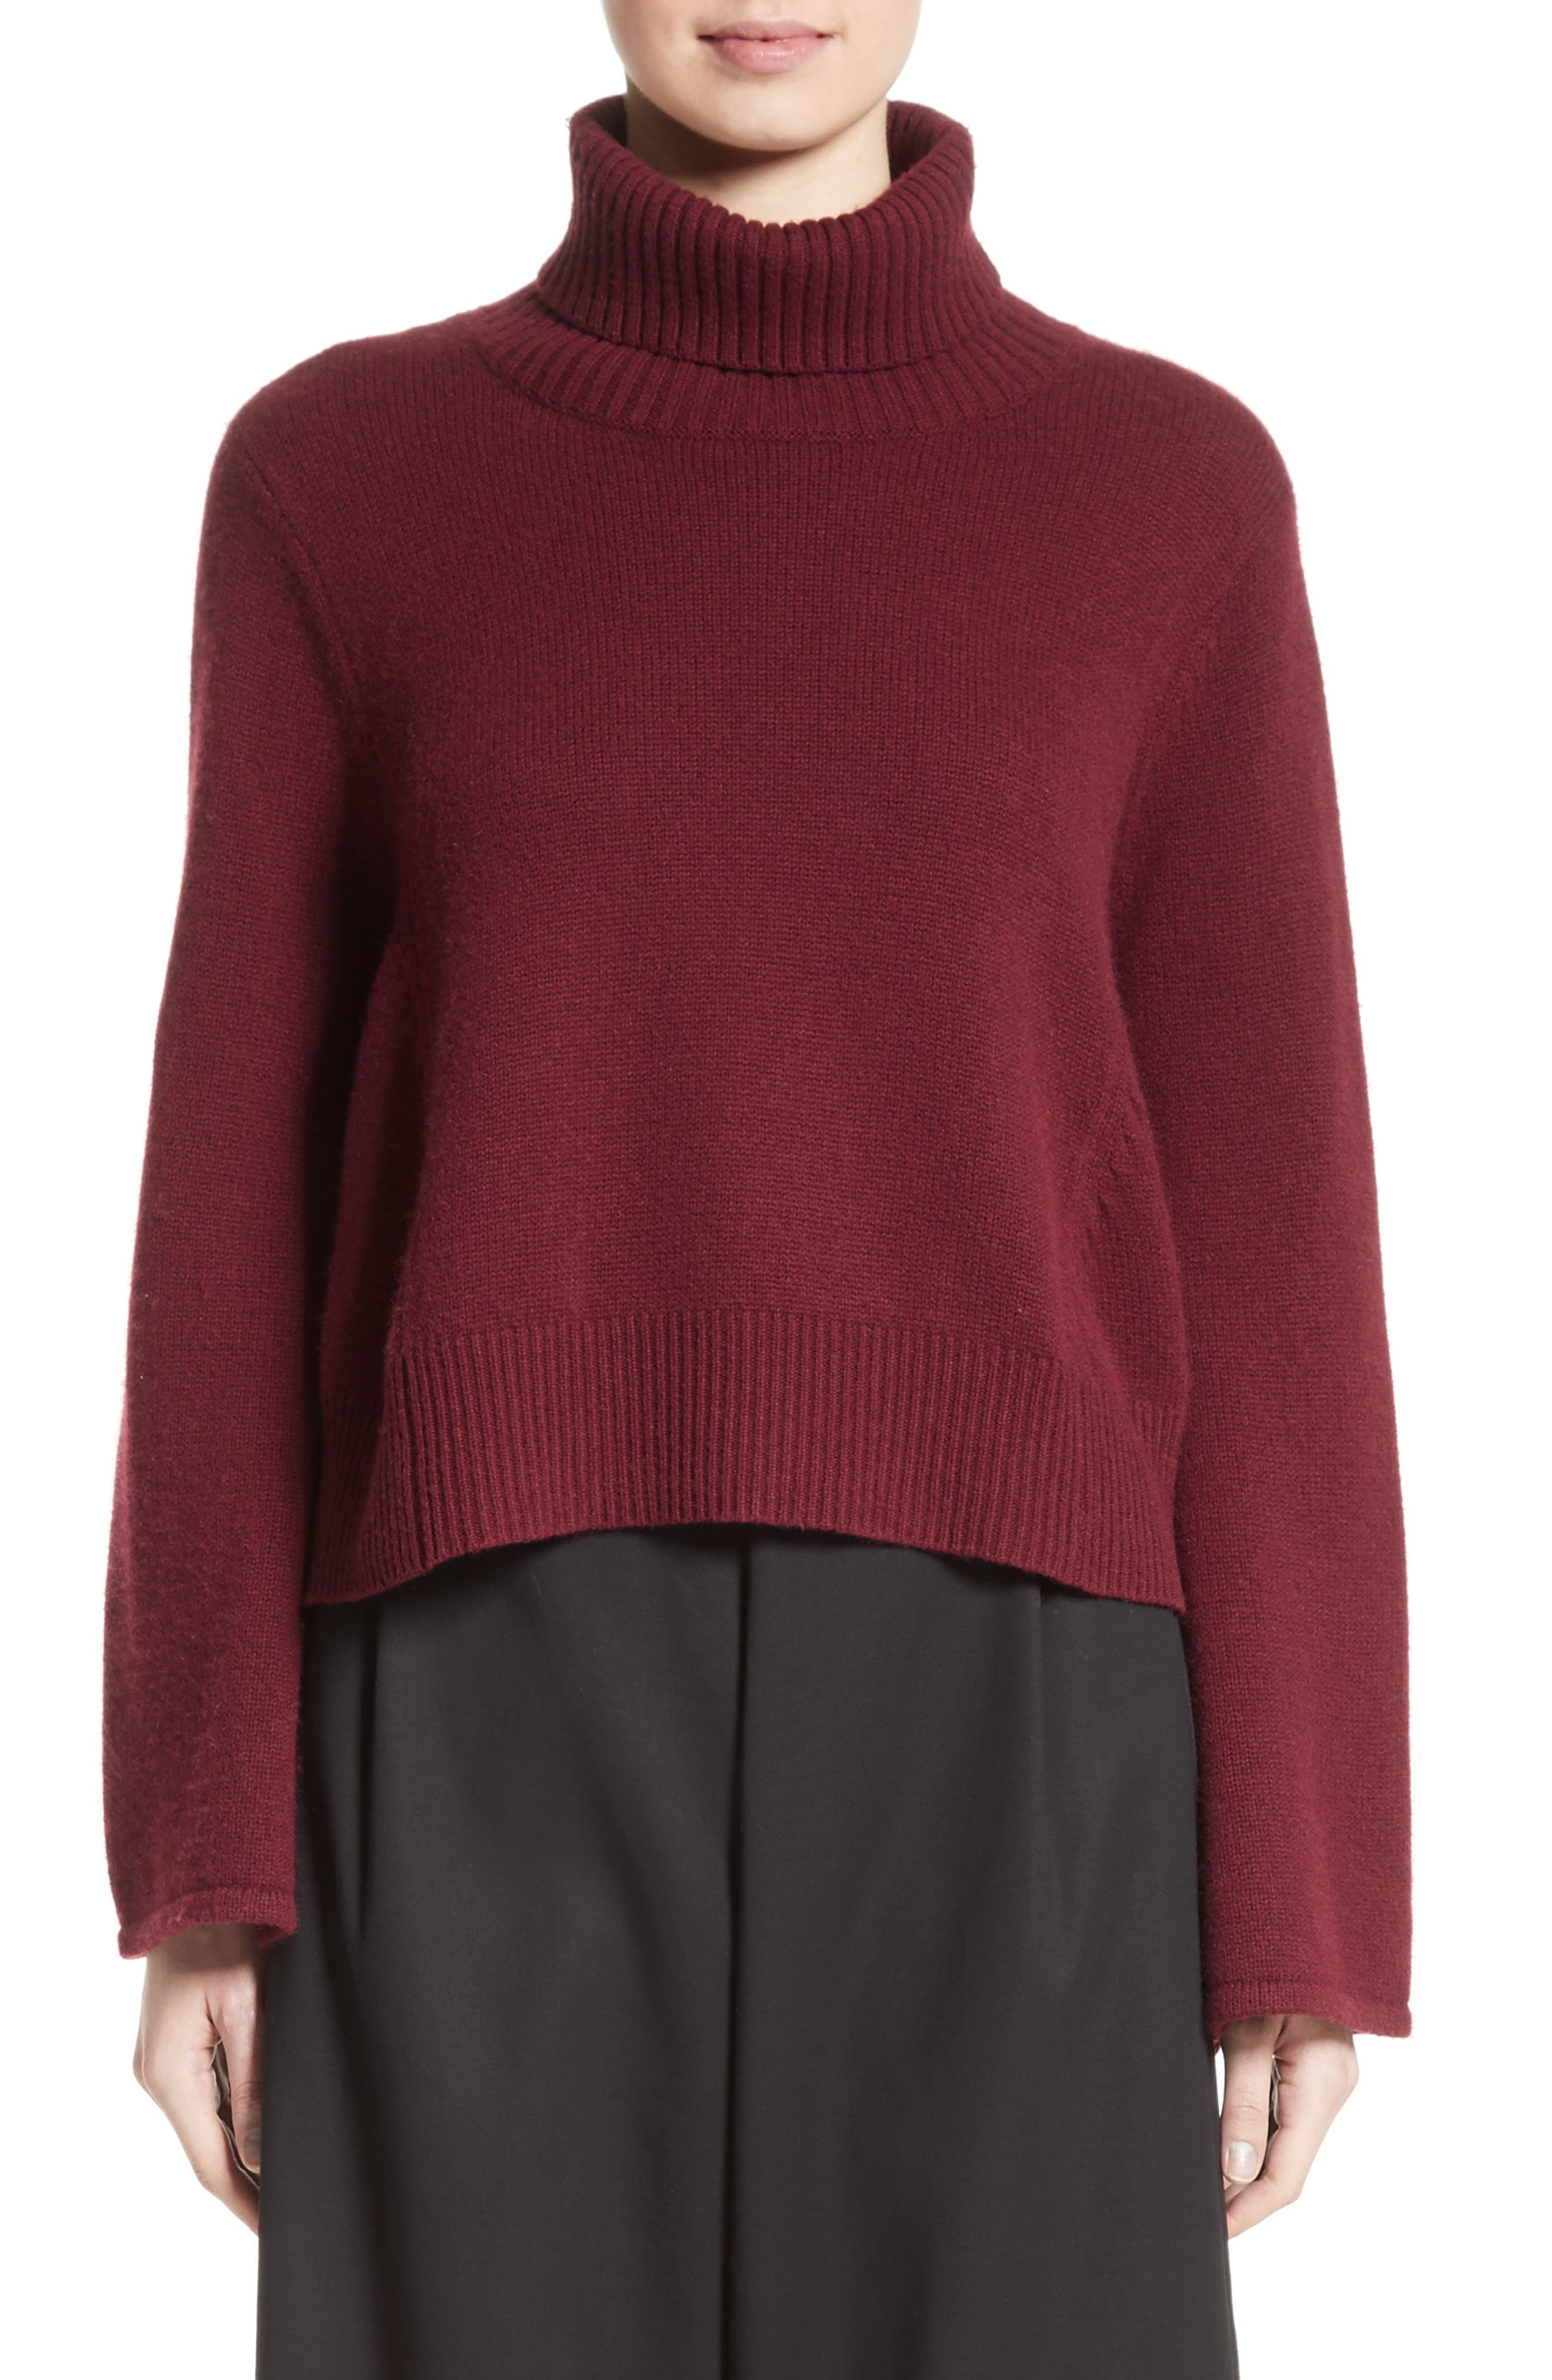 Bell Sleeve Wool & Cashmere Sweater,                             Main thumbnail 1, color,                             930